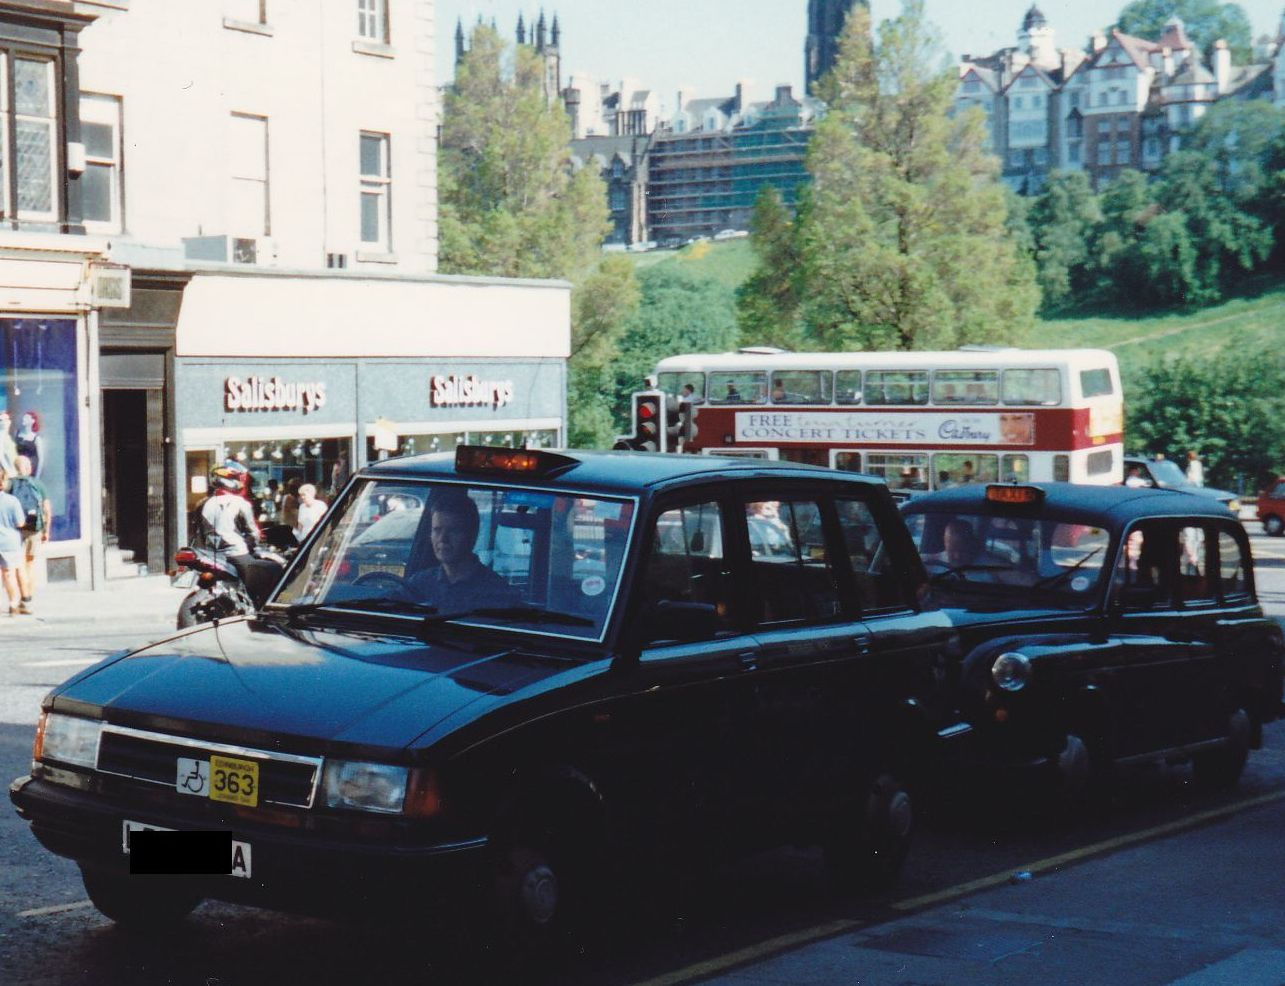 Austin Fx 100 Carbodies London Taxi 0007